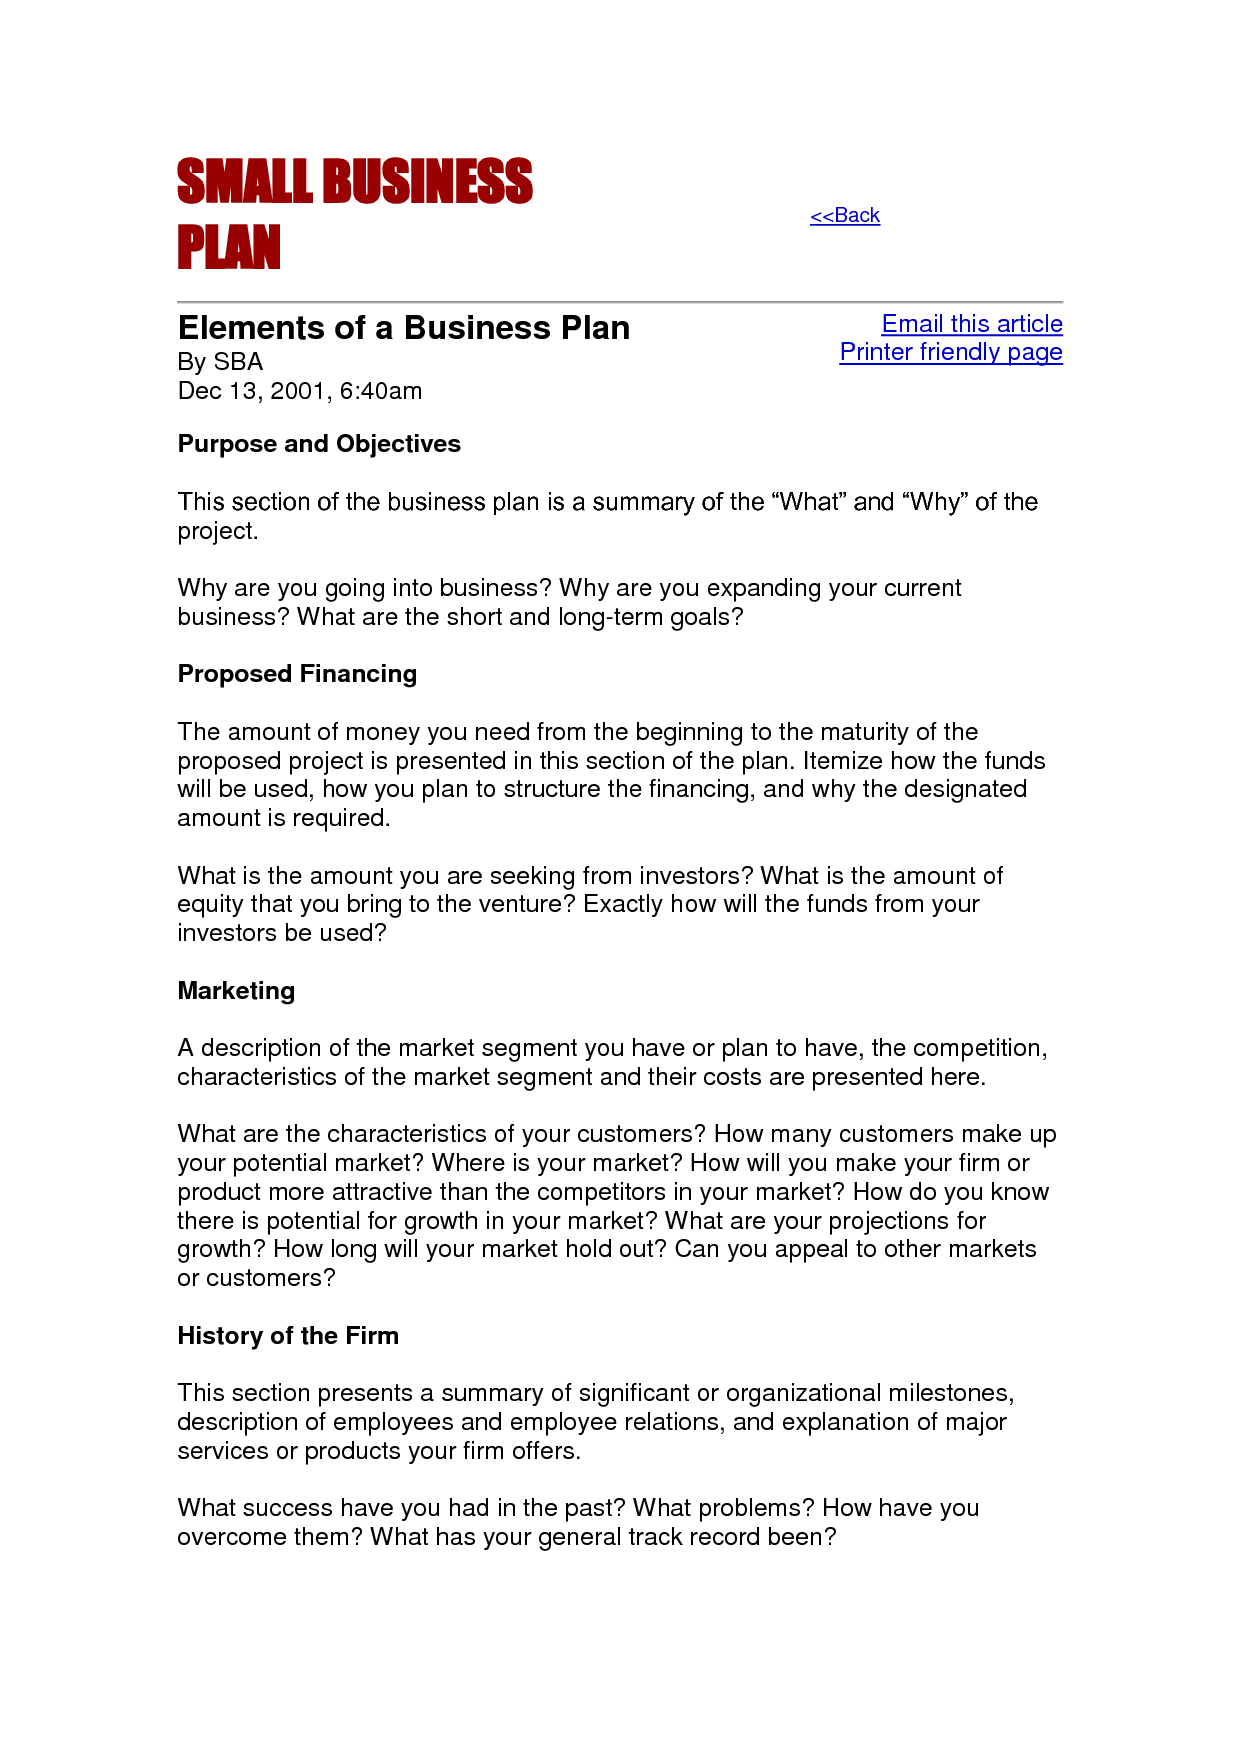 Small Business Proposal Template - building a stronger small ...